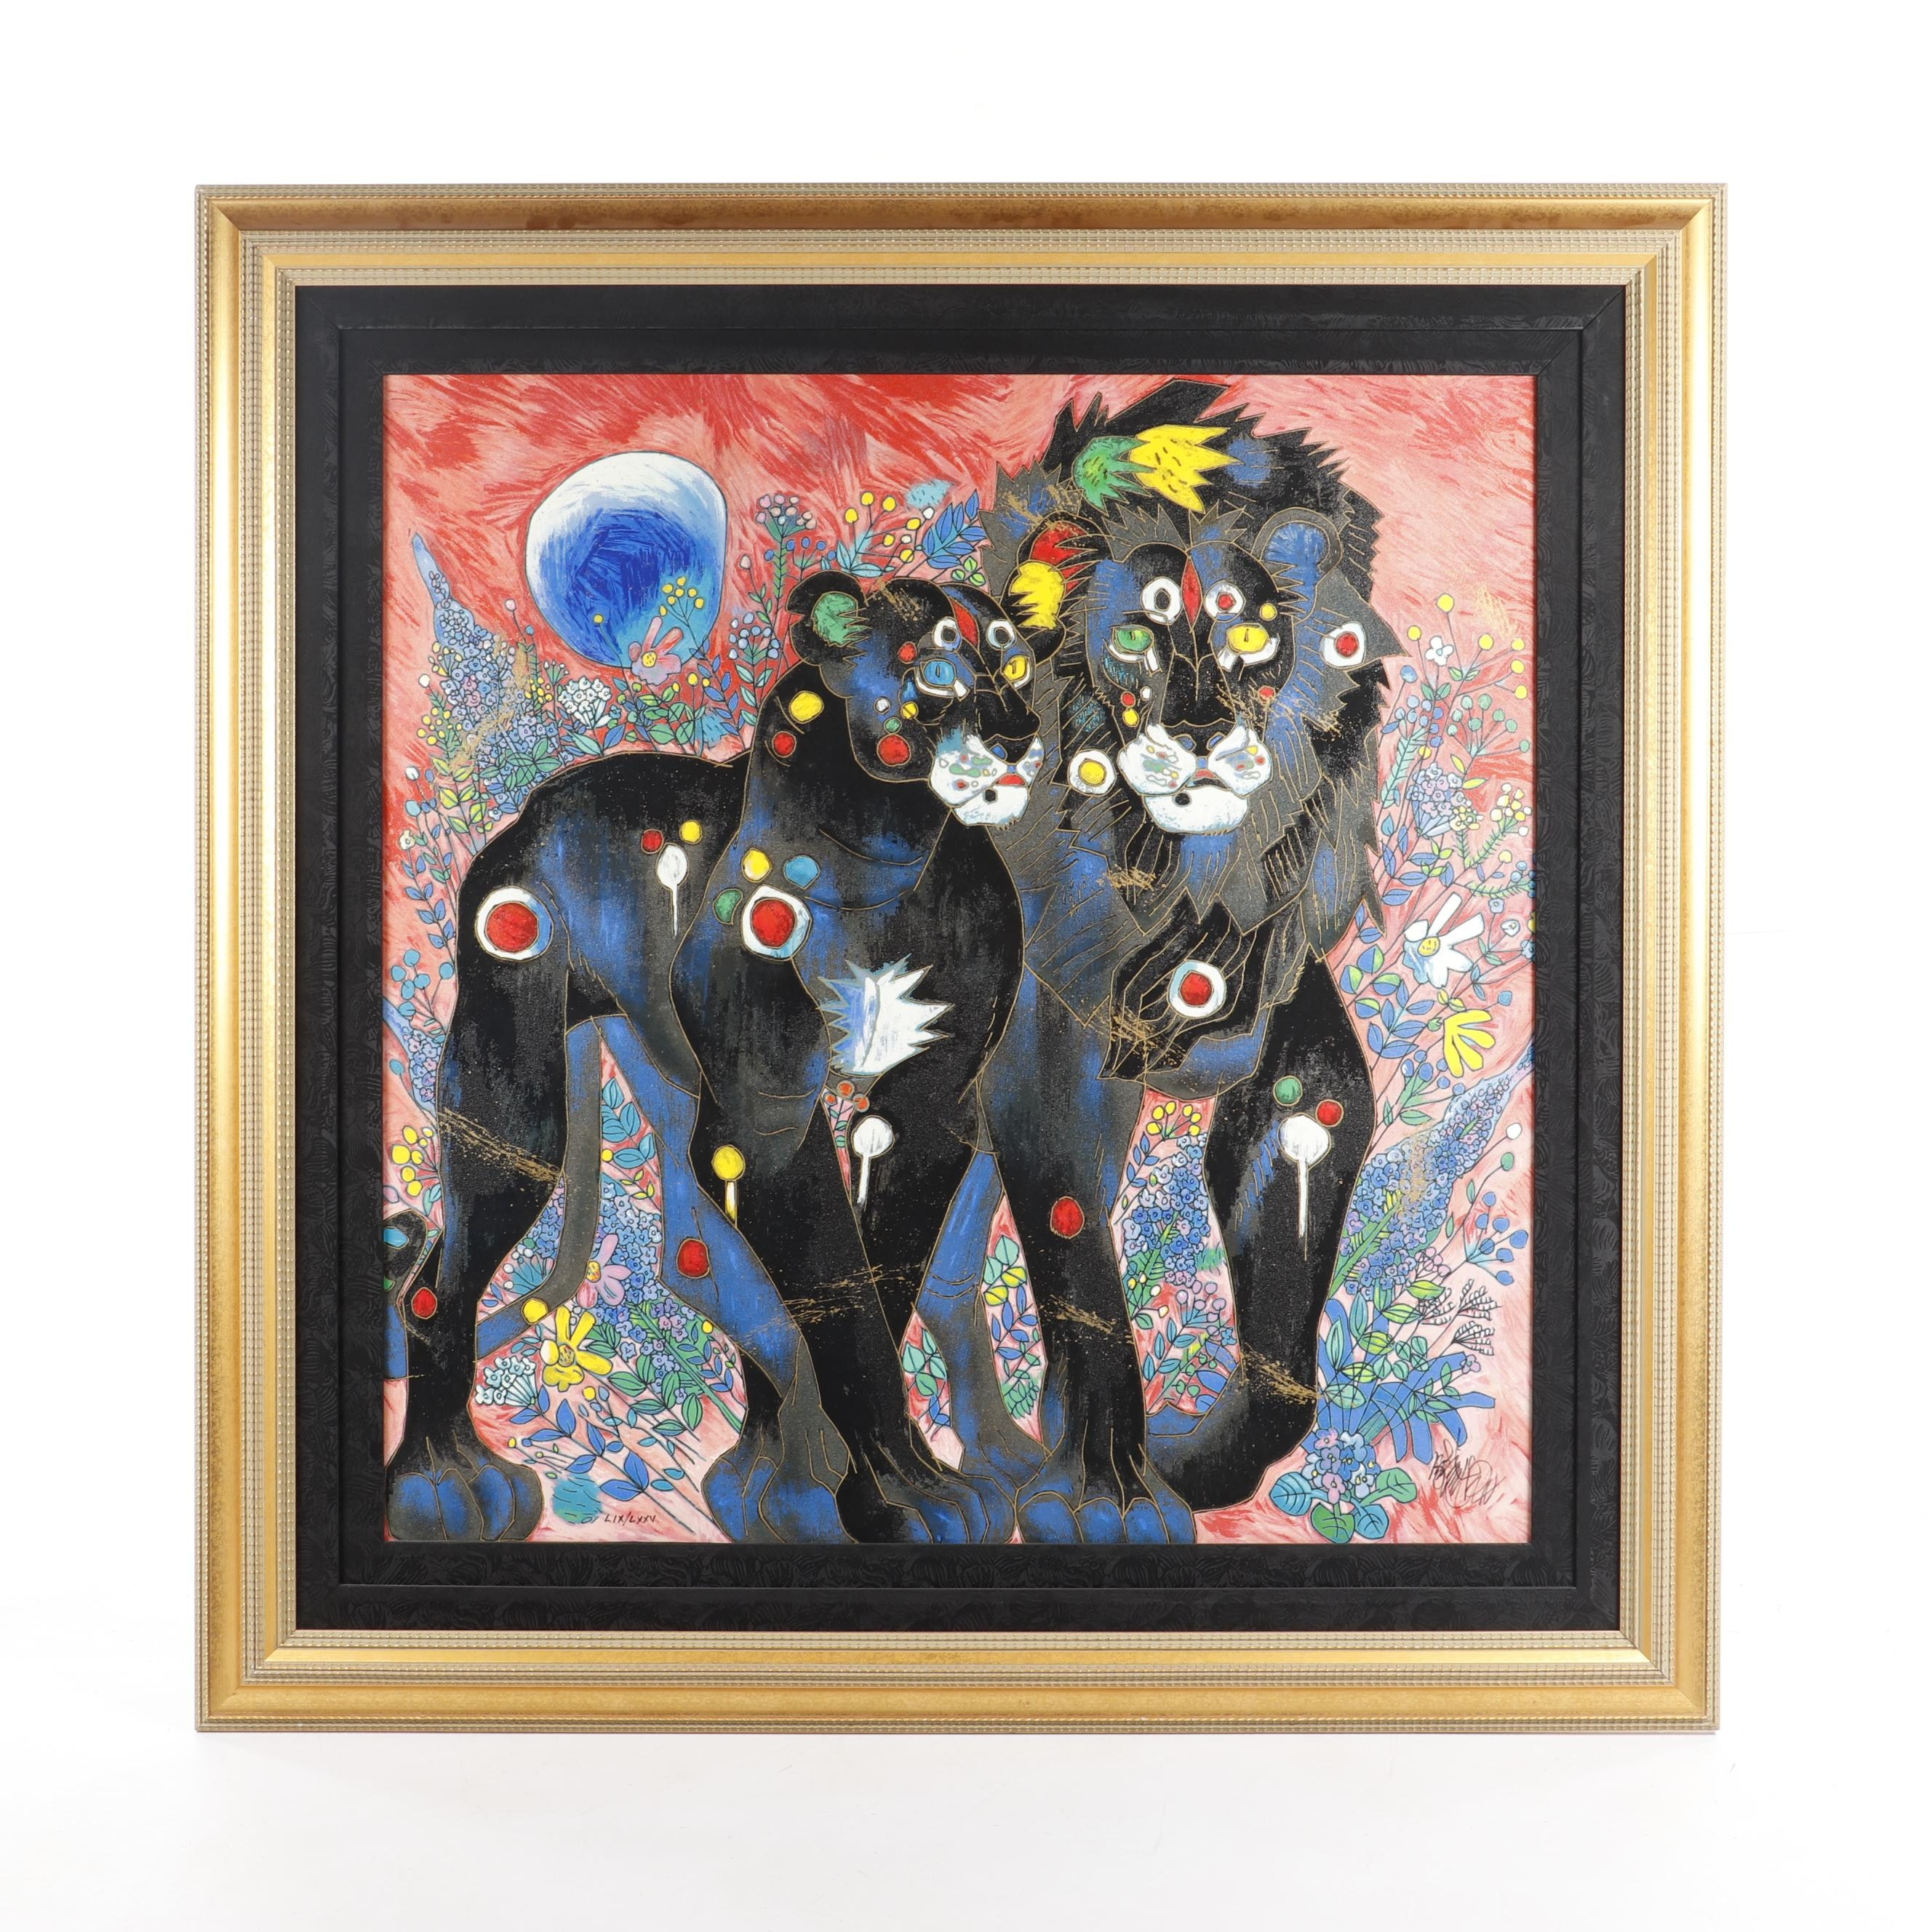 Tiefeng Jiang Embellished Serigraph on Canvas